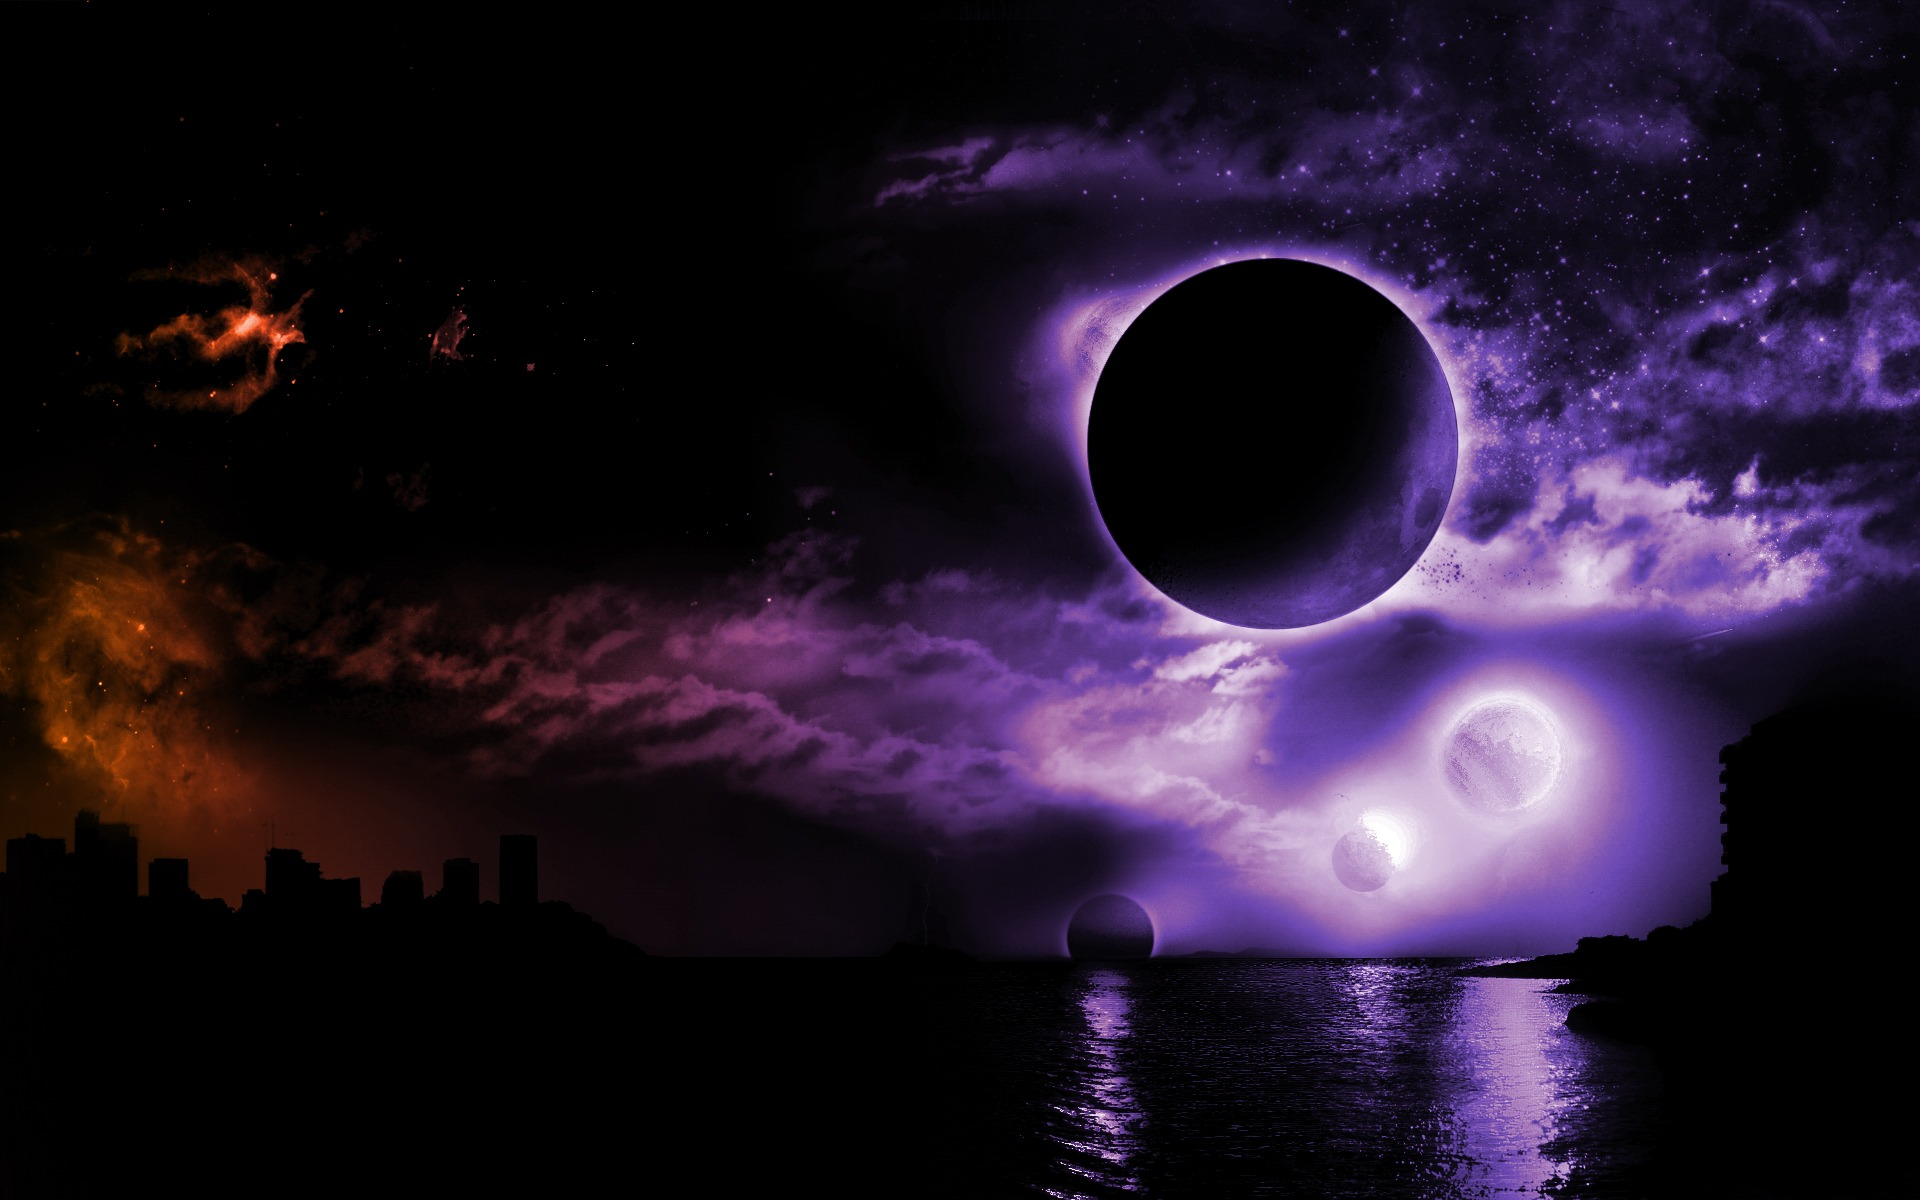 Dark Space Wallpaper Abstract Other Wallpapers in jpg format for